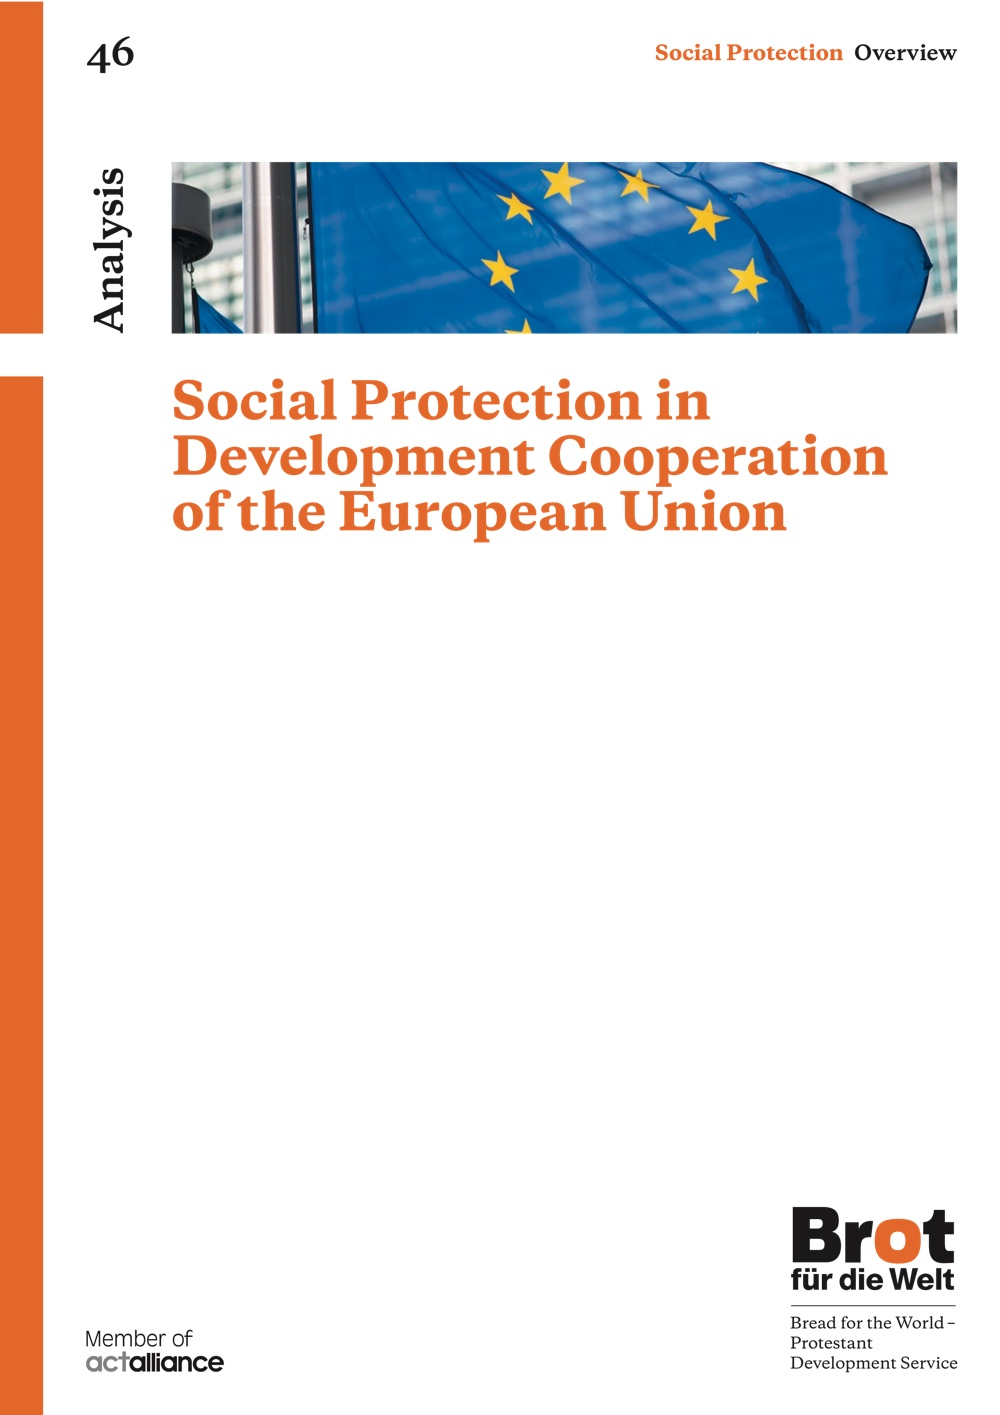 Social Protection in Development Cooperation of the European Union